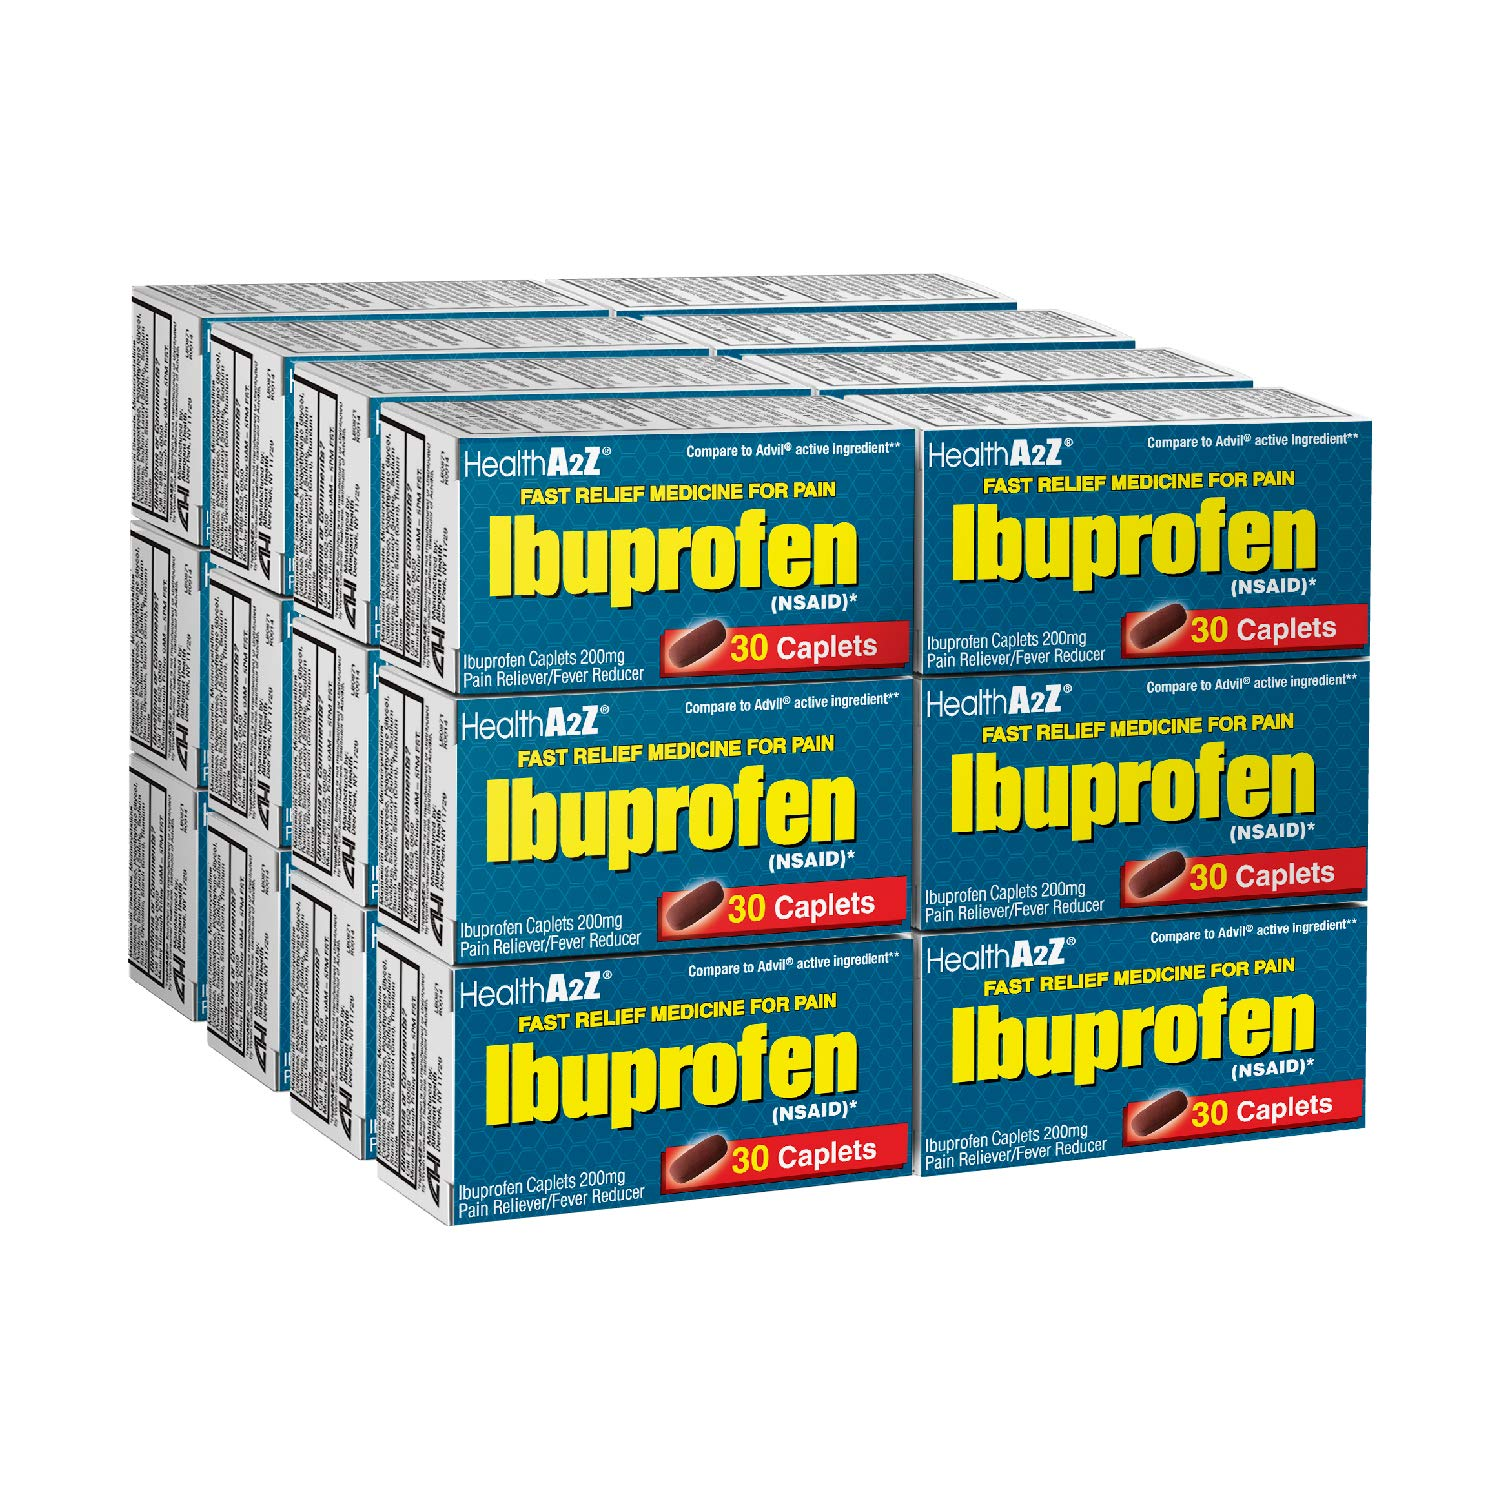 HealthA2Z Ibuprofen Tablets 200mg, 24X30 Counts, Value Package by HealthA2Z